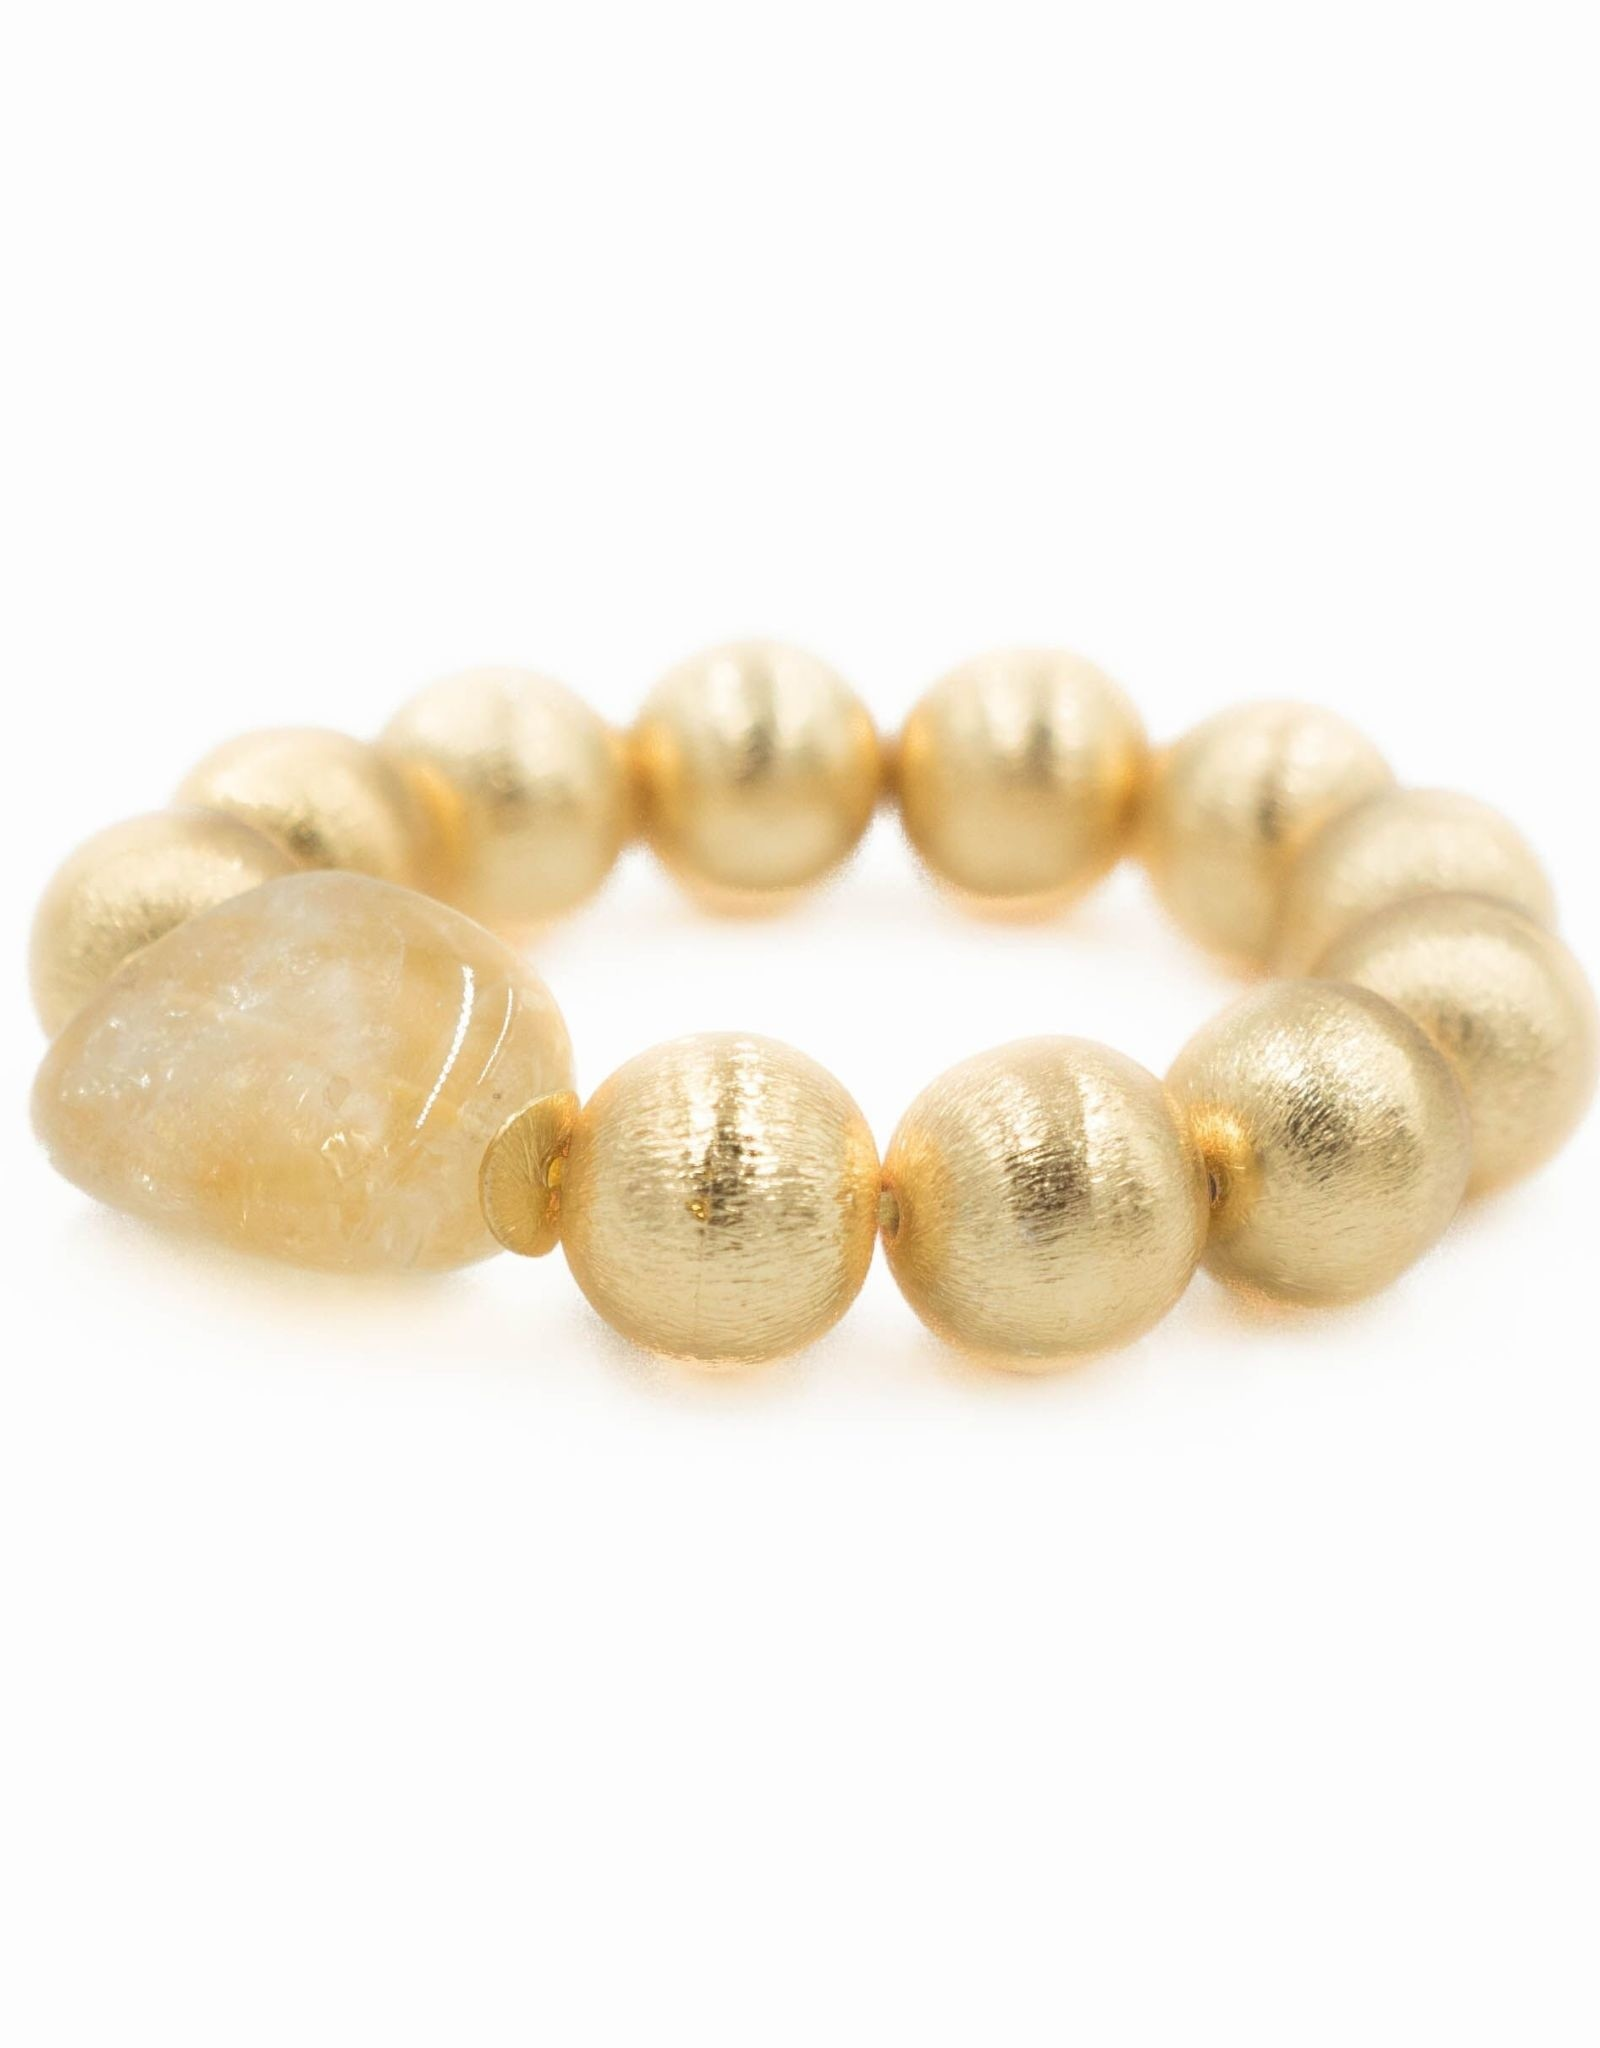 Hazen & Co. Margot Bracelet Citrine